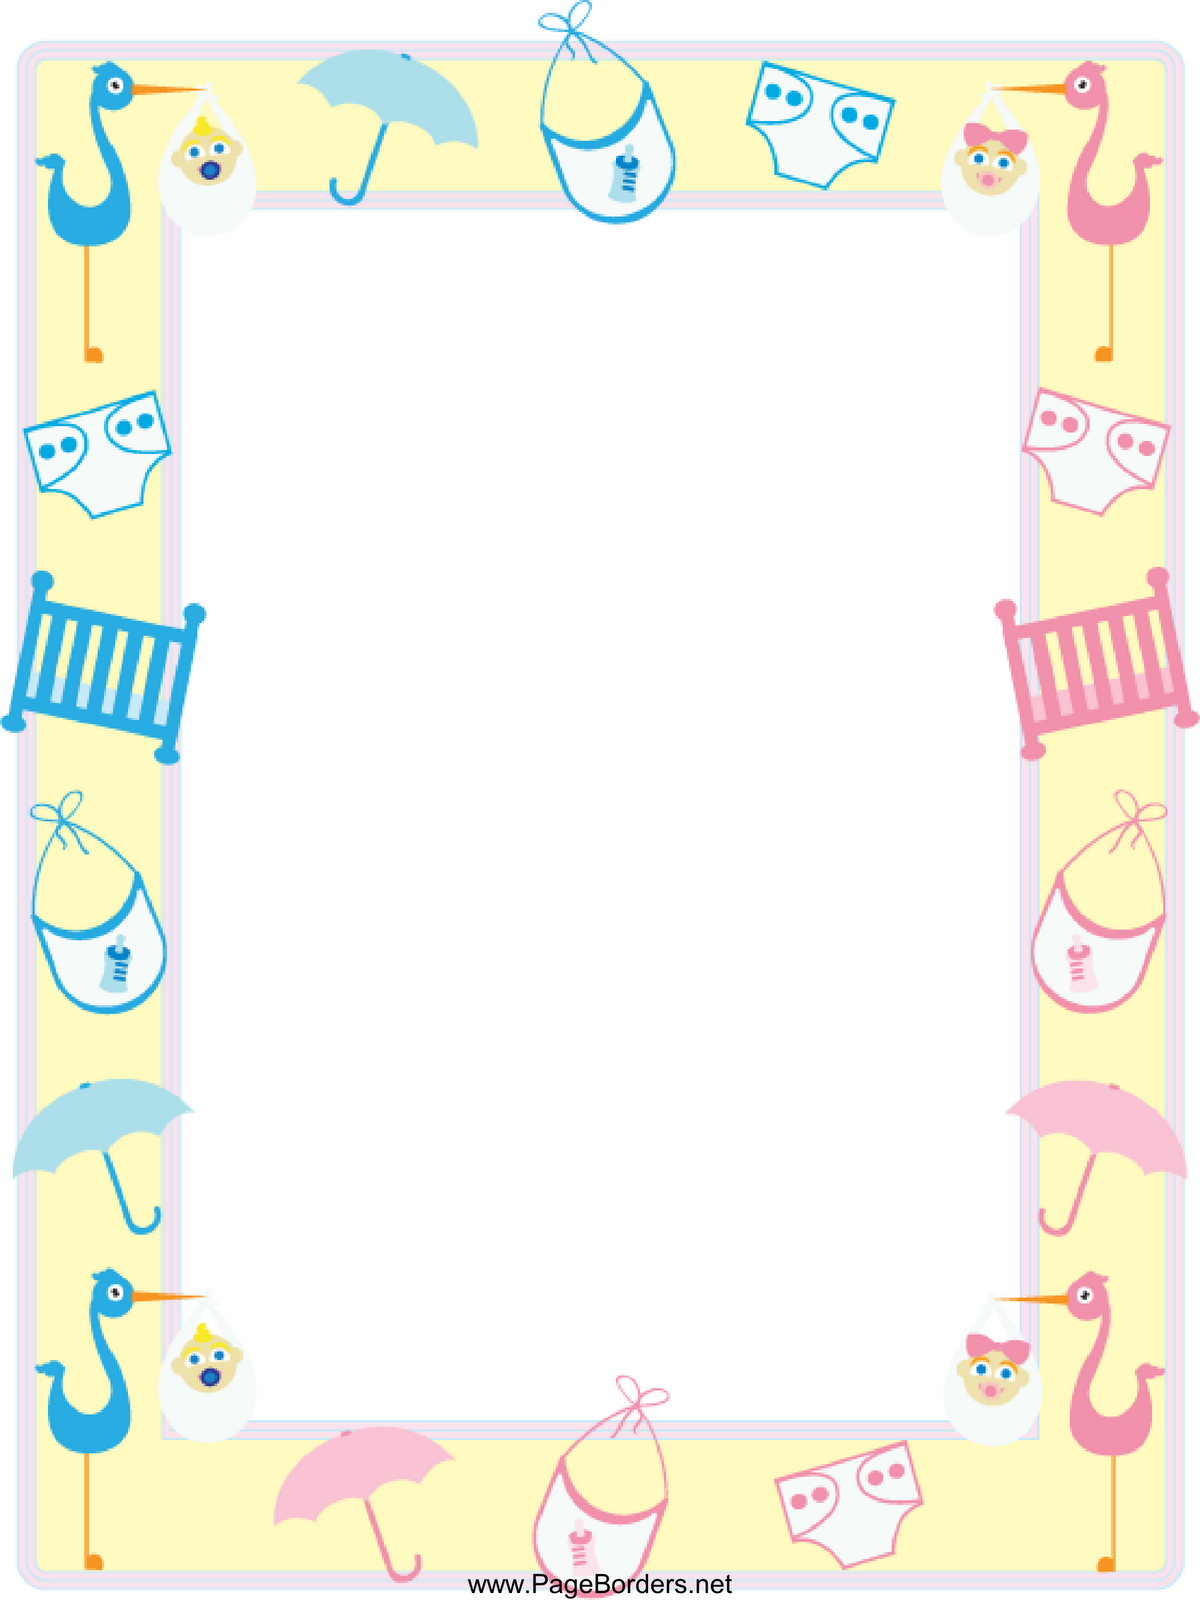 Baby Borders Free Cliparts That You Can Download To You Computer And